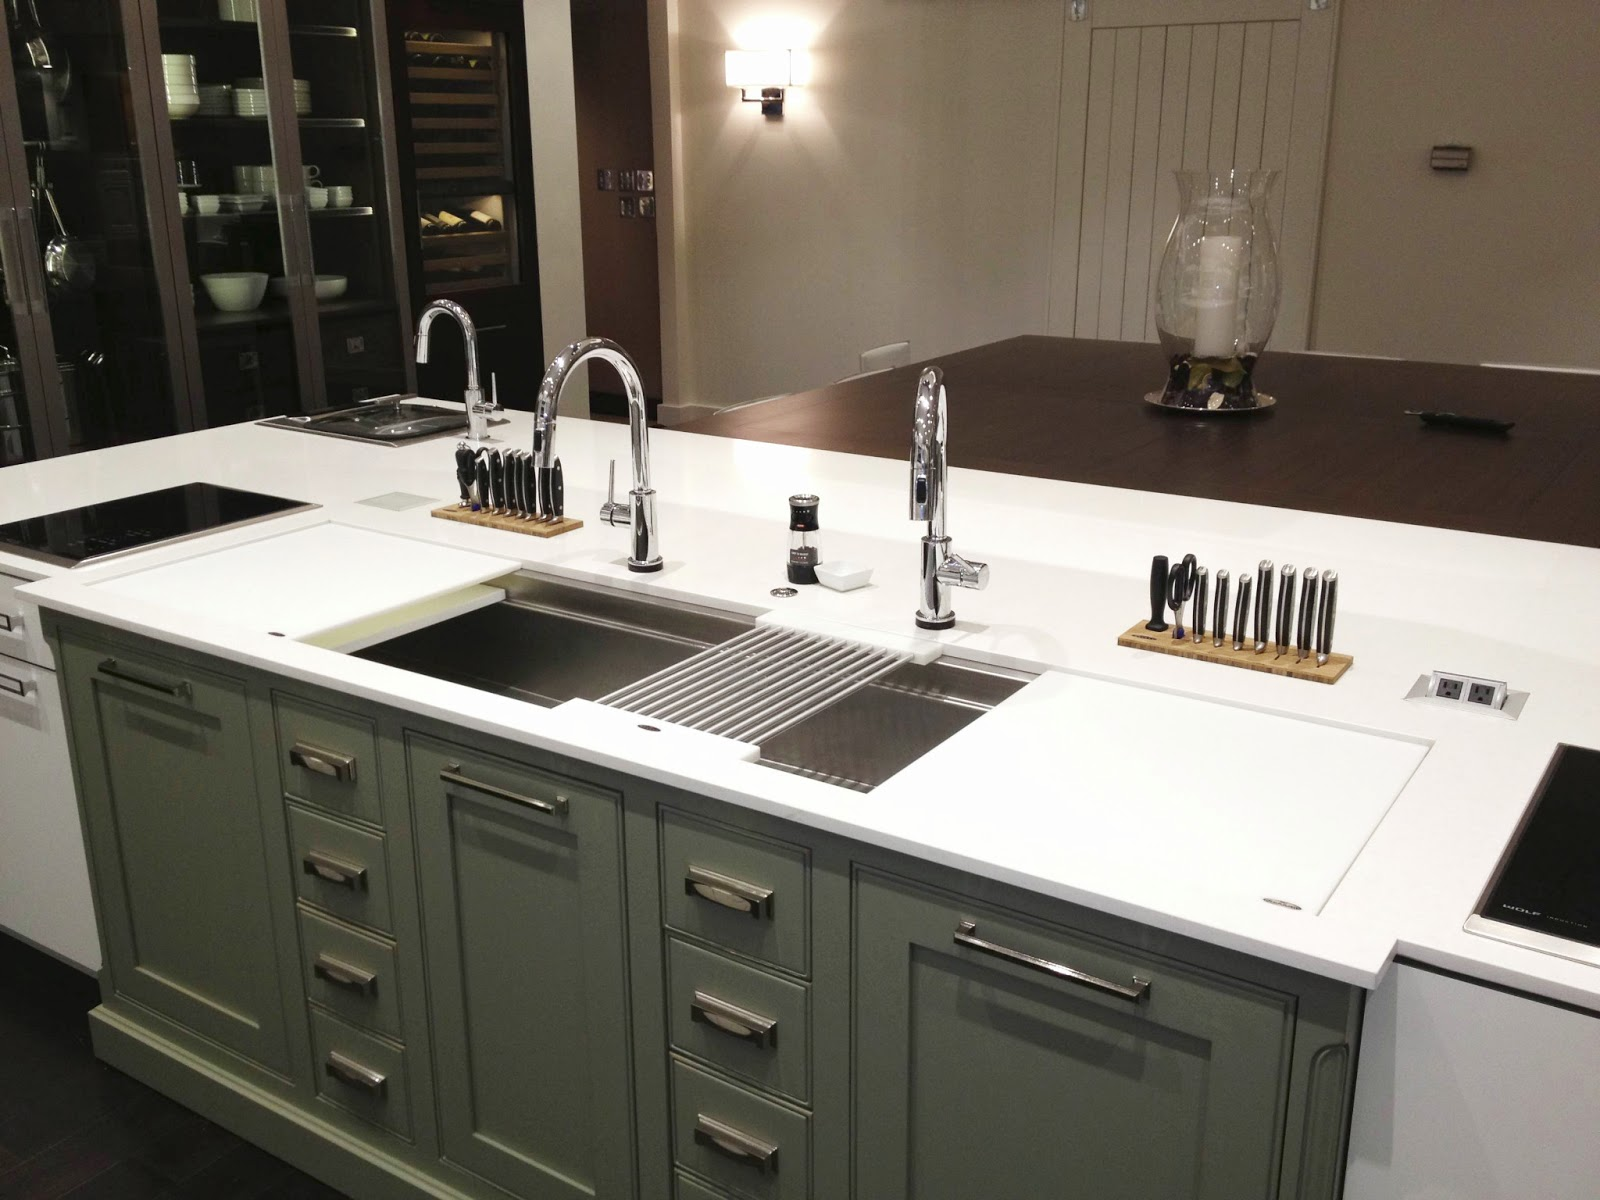 galley kitchen sink time2design custom cabinetry and interior design kitchen 1176